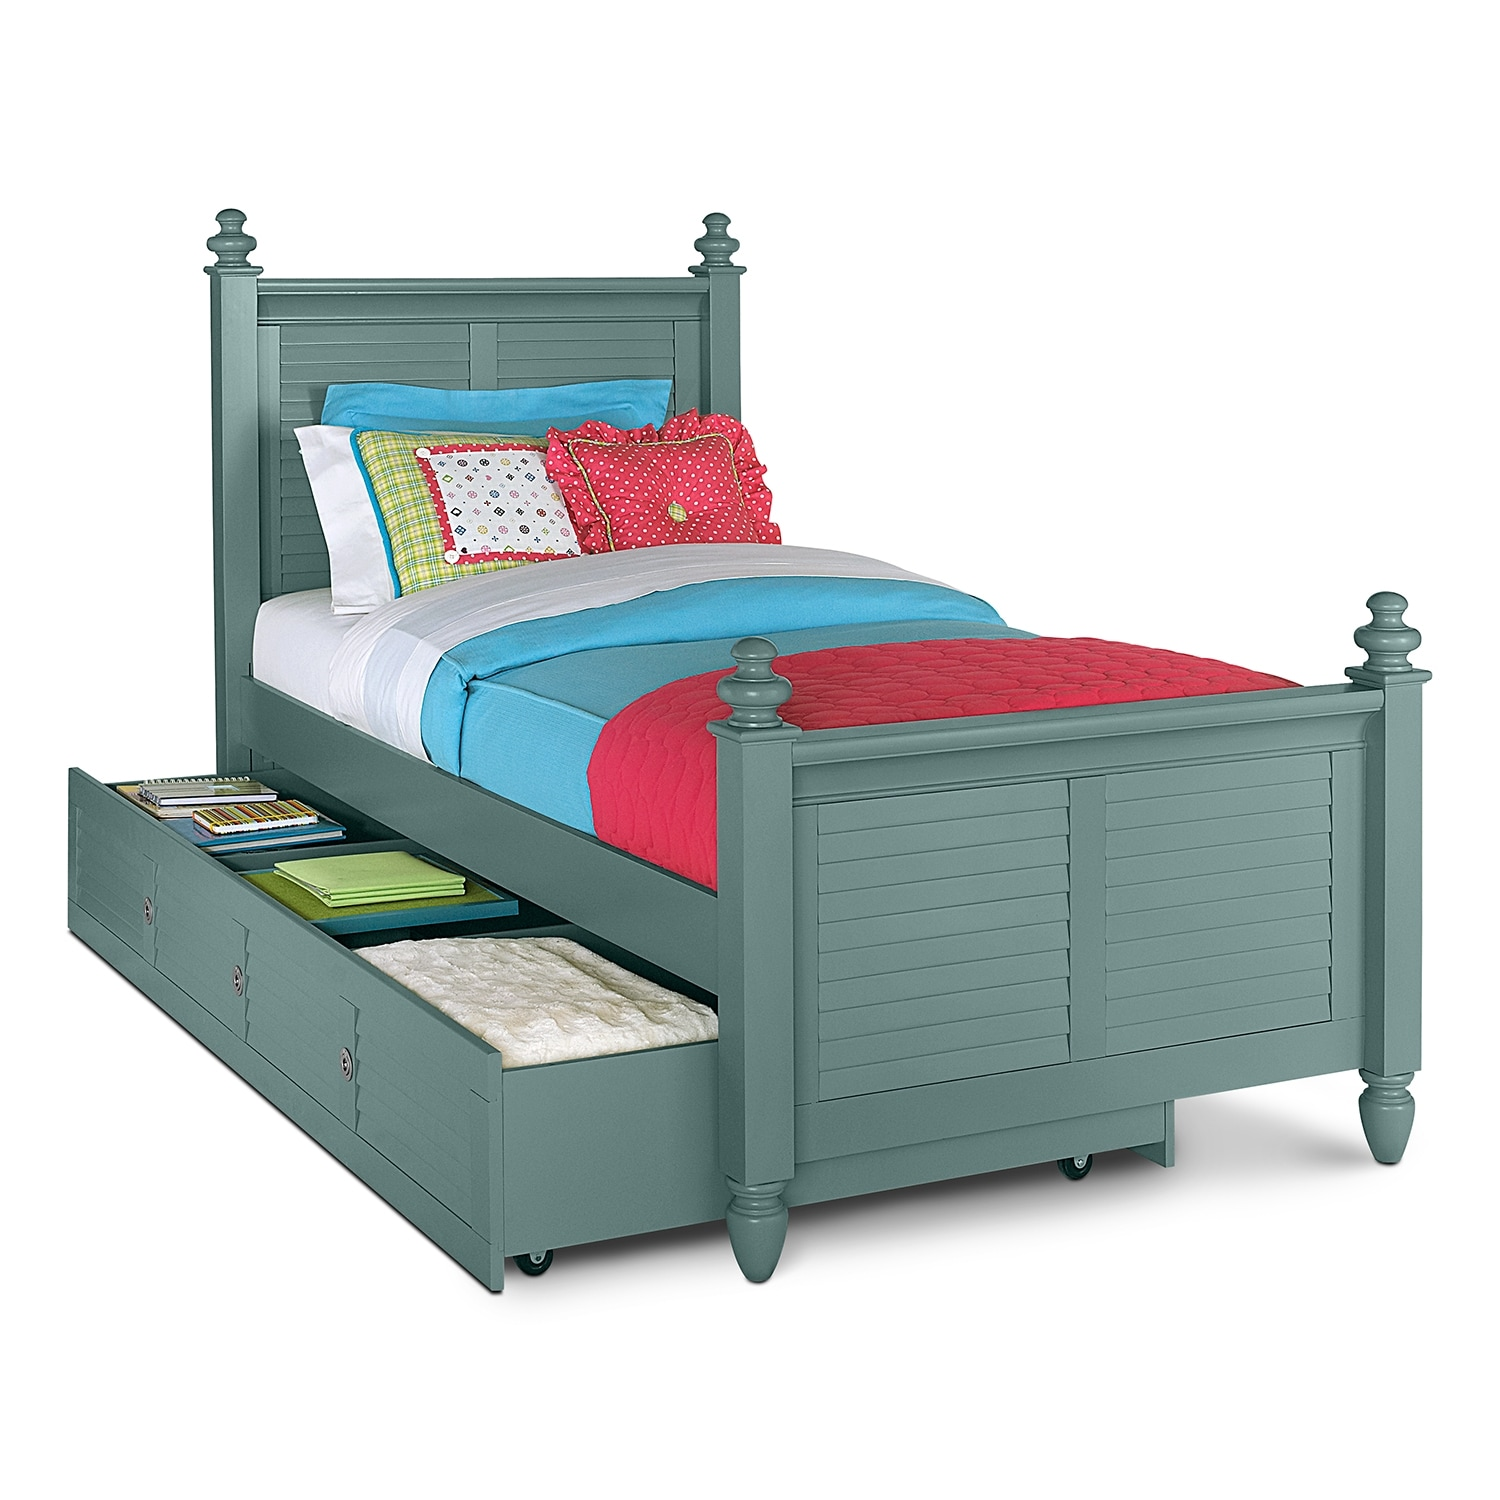 Seaside blue kids furniture full bed with trundle value Seaside collection furniture